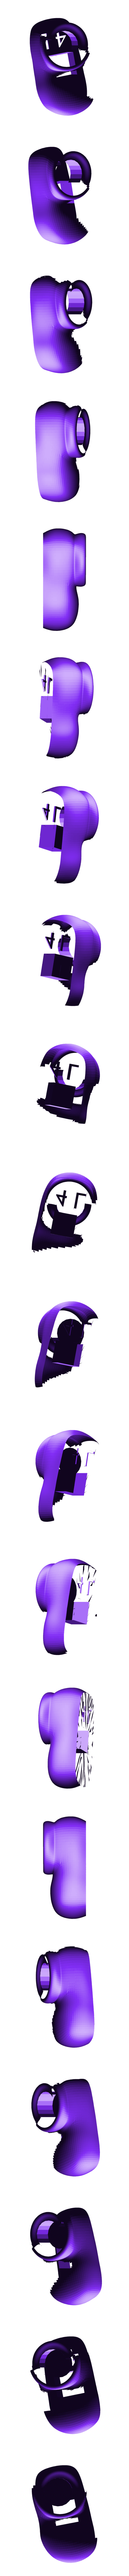 purple_shoe_4_left.stl Download free STL file Wiggler from Mario games - multi-color • Template to 3D print, bpitanga